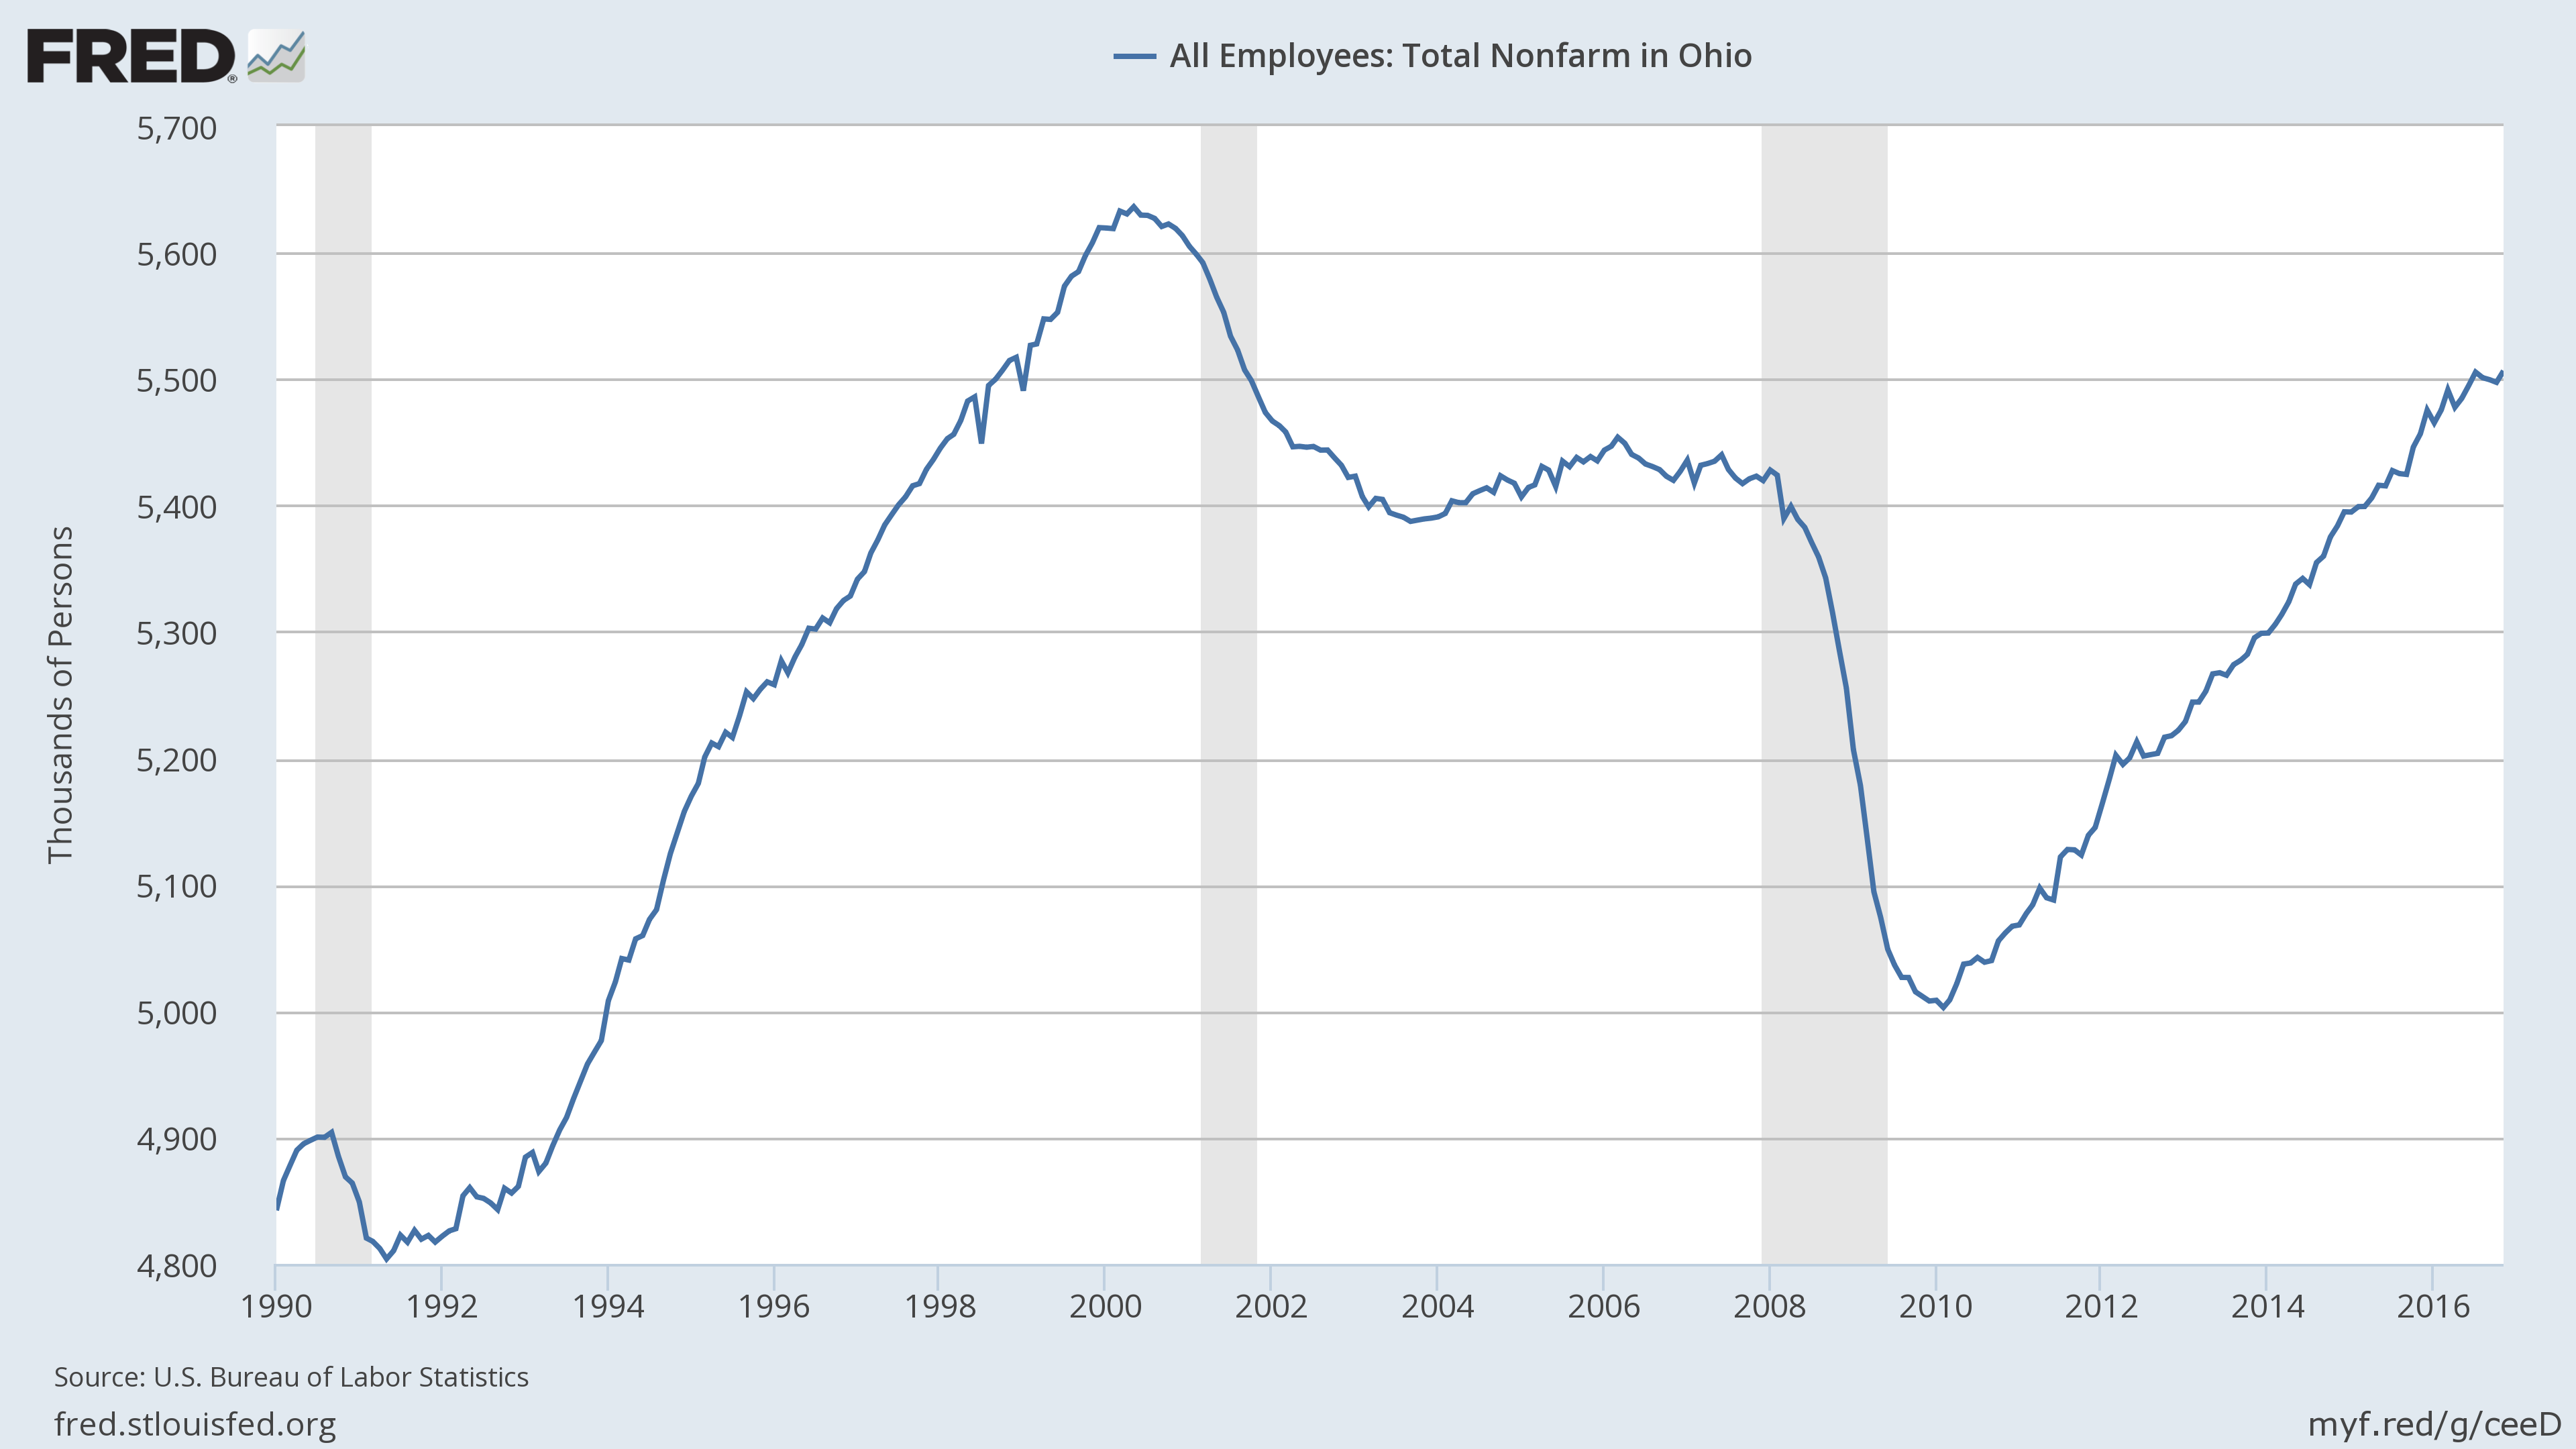 U.S. Bureau of Labor Statistics, All Employees: Total Nonfarm in Ohio [OHNA], retrieved from FRED, Federal Reserve Bank of St. Louis; https://fred.stlouisfed.org/series/OHNA